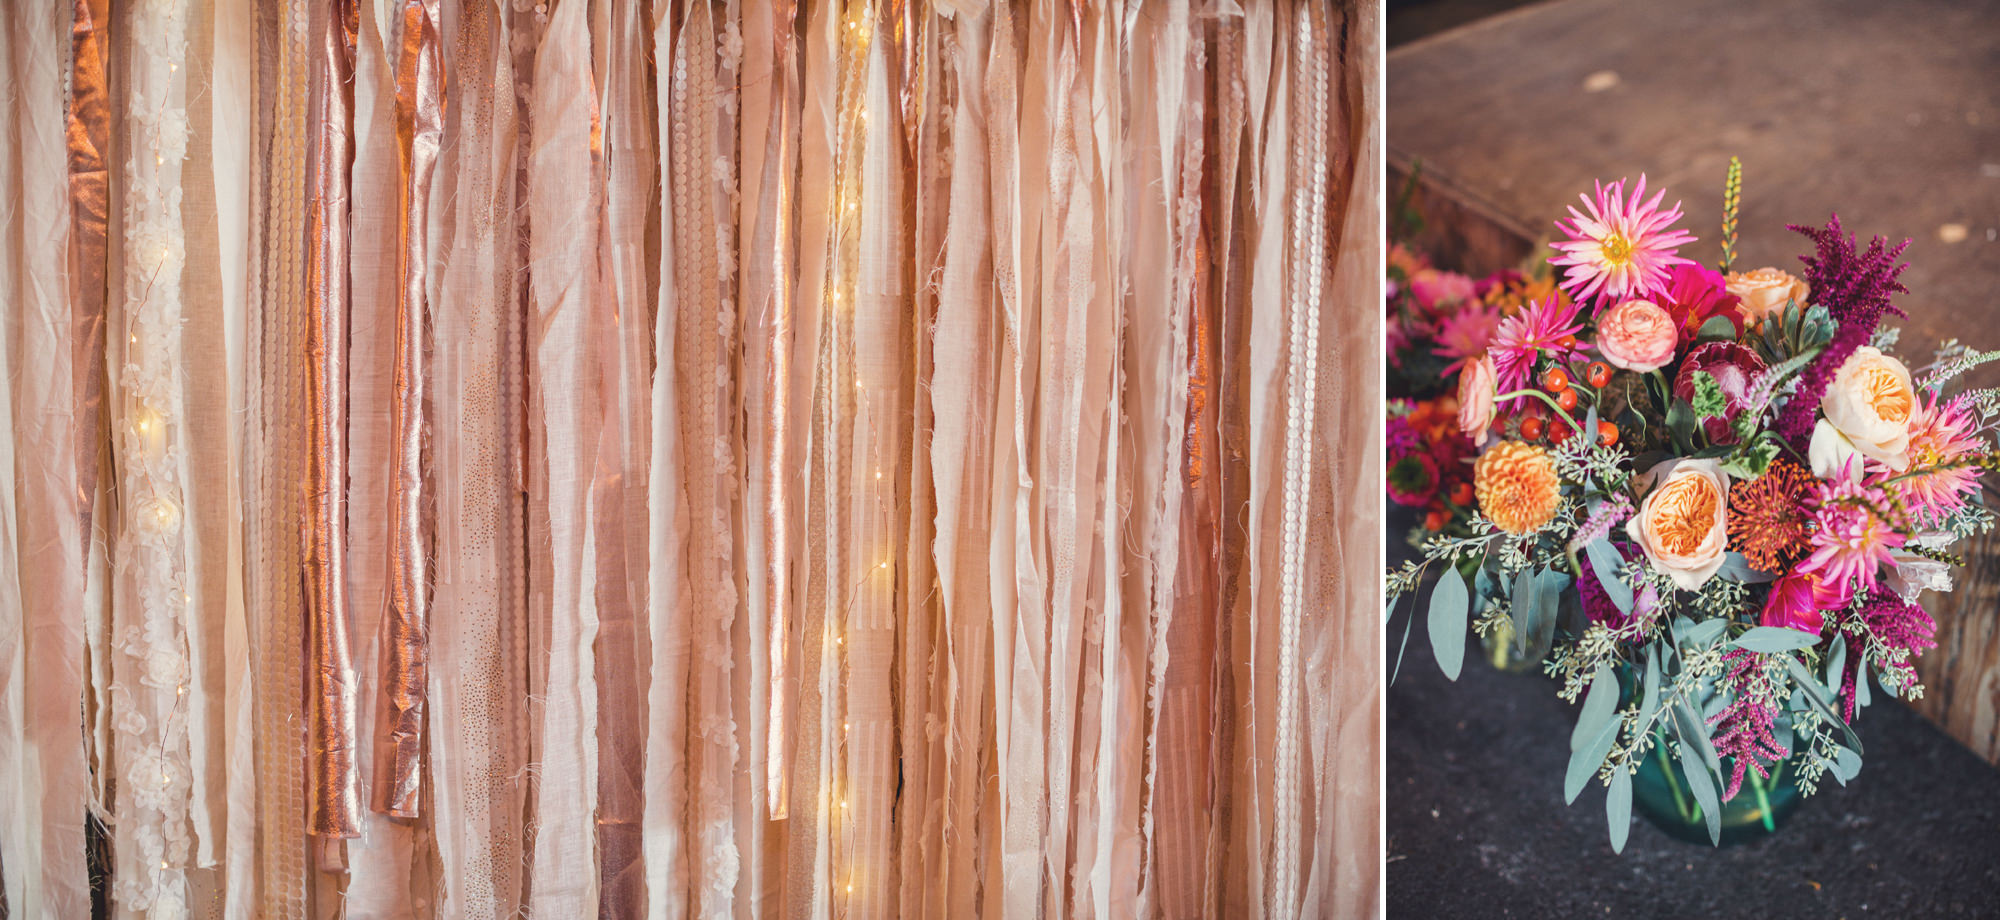 Toby's Feed Barn Wedding ©Anne-Claire Brun 75